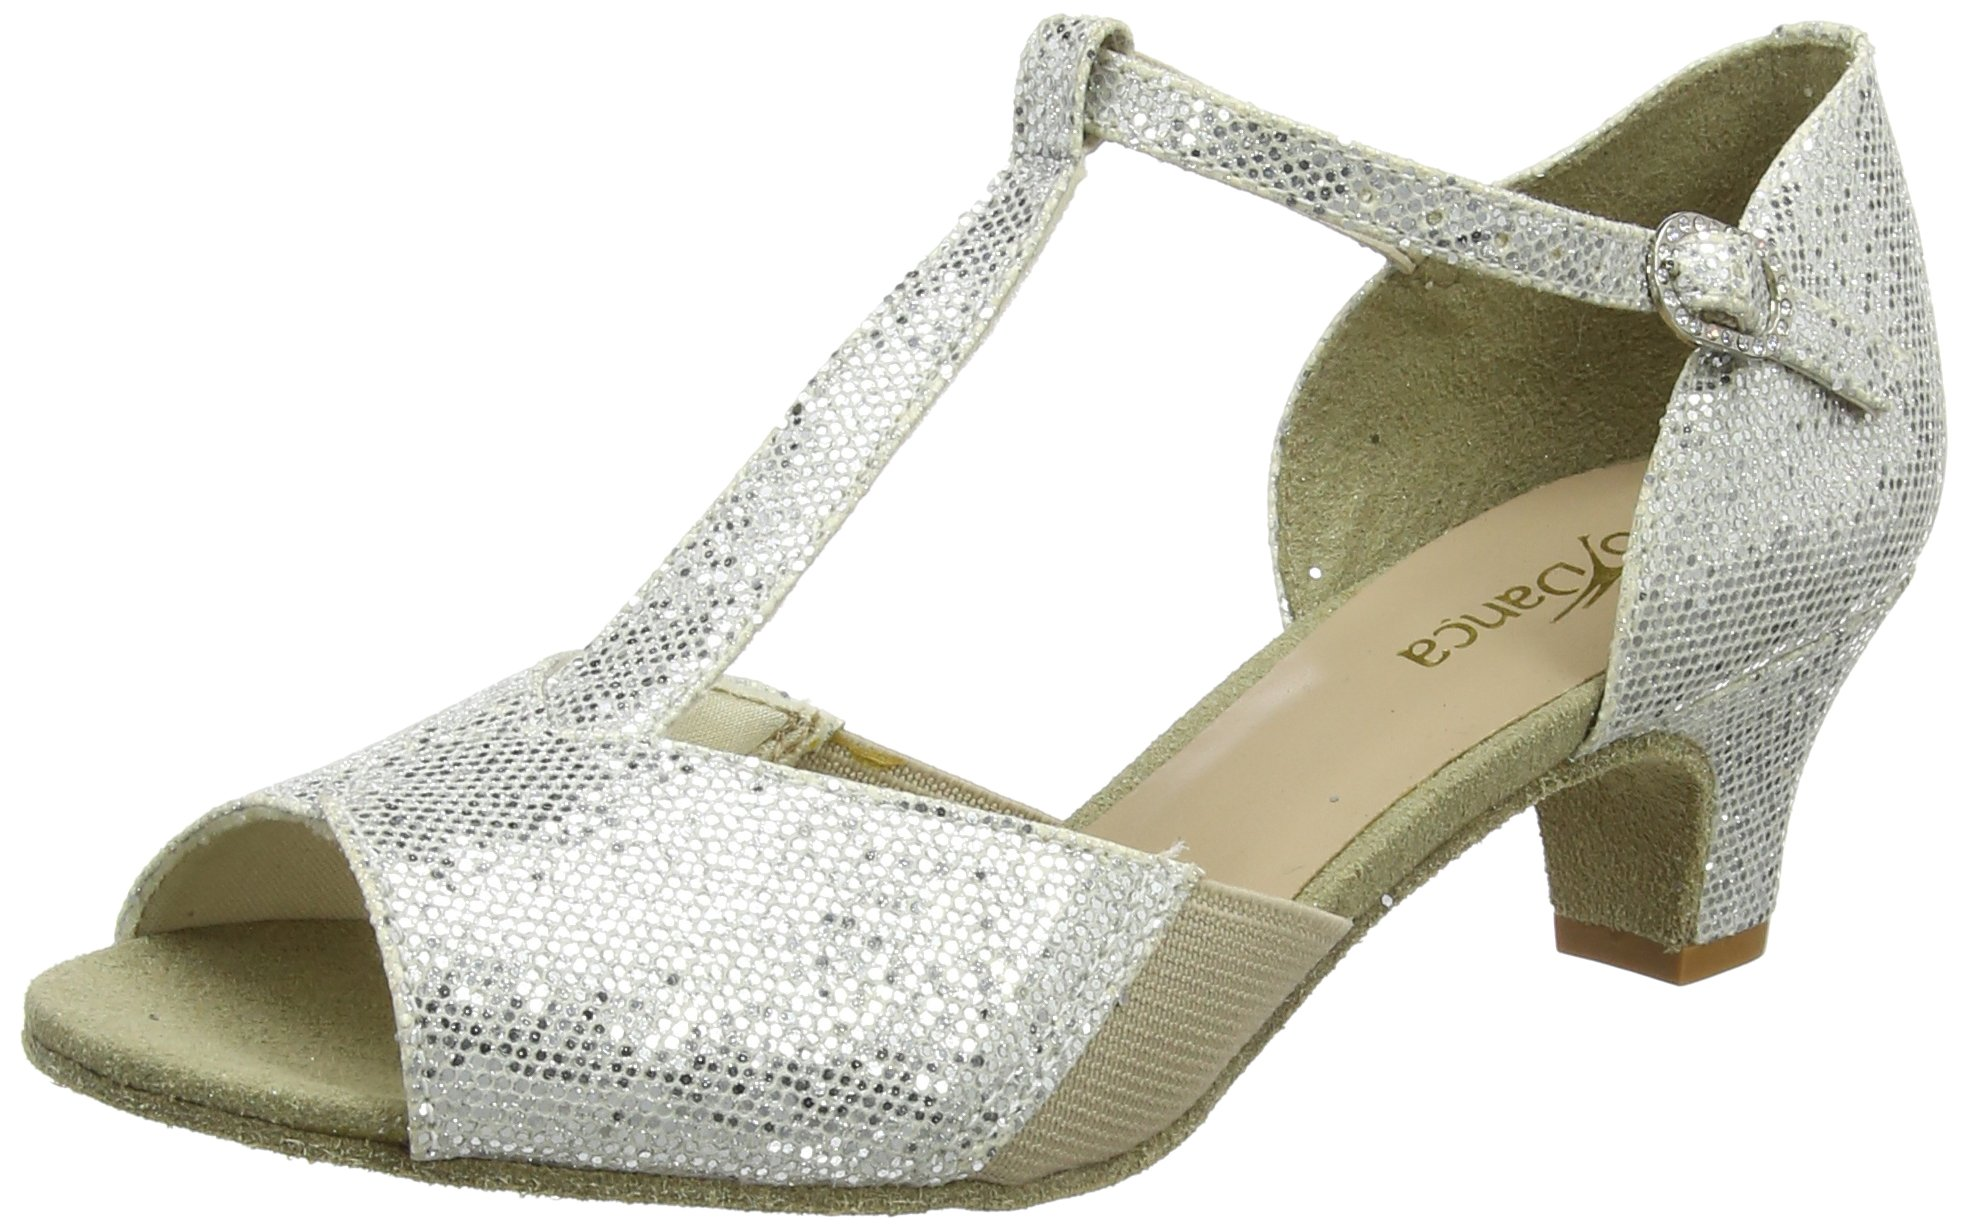 De Danca Bl33Chaussures So Salon Euus9 Danse FemmeArgentsilver39 lJ5TF1cu3K